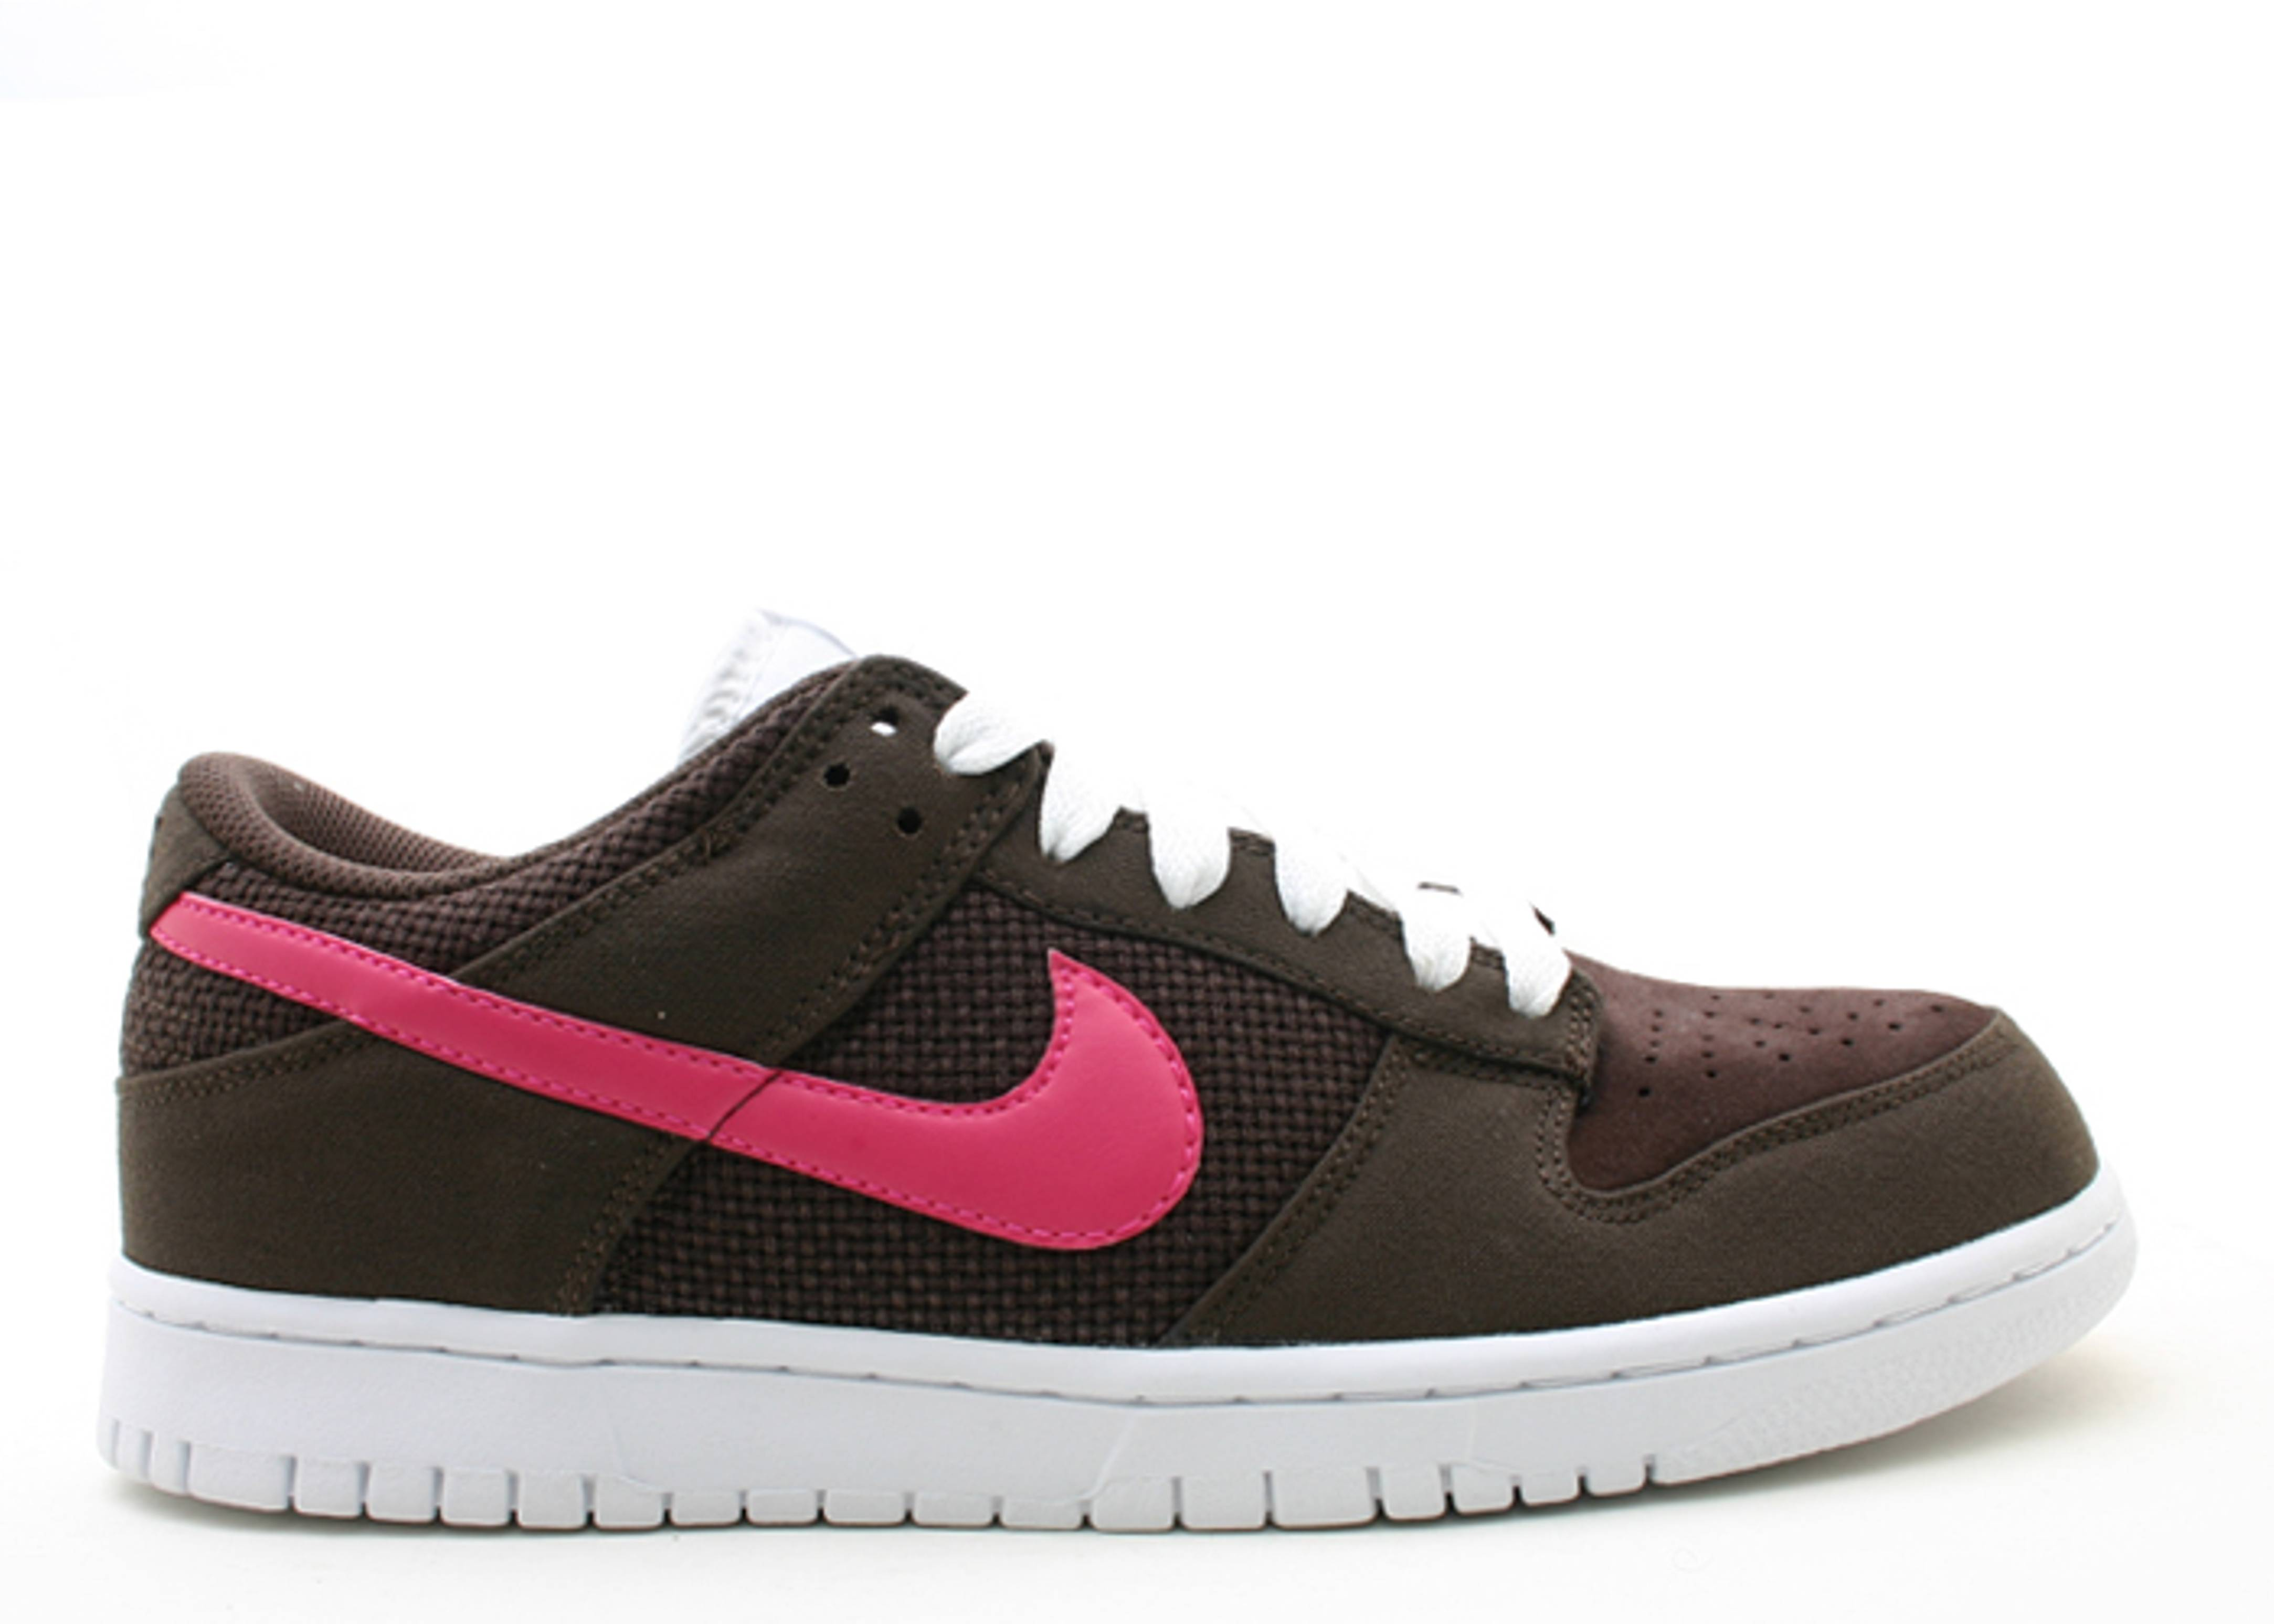 nike dunks pink and brown